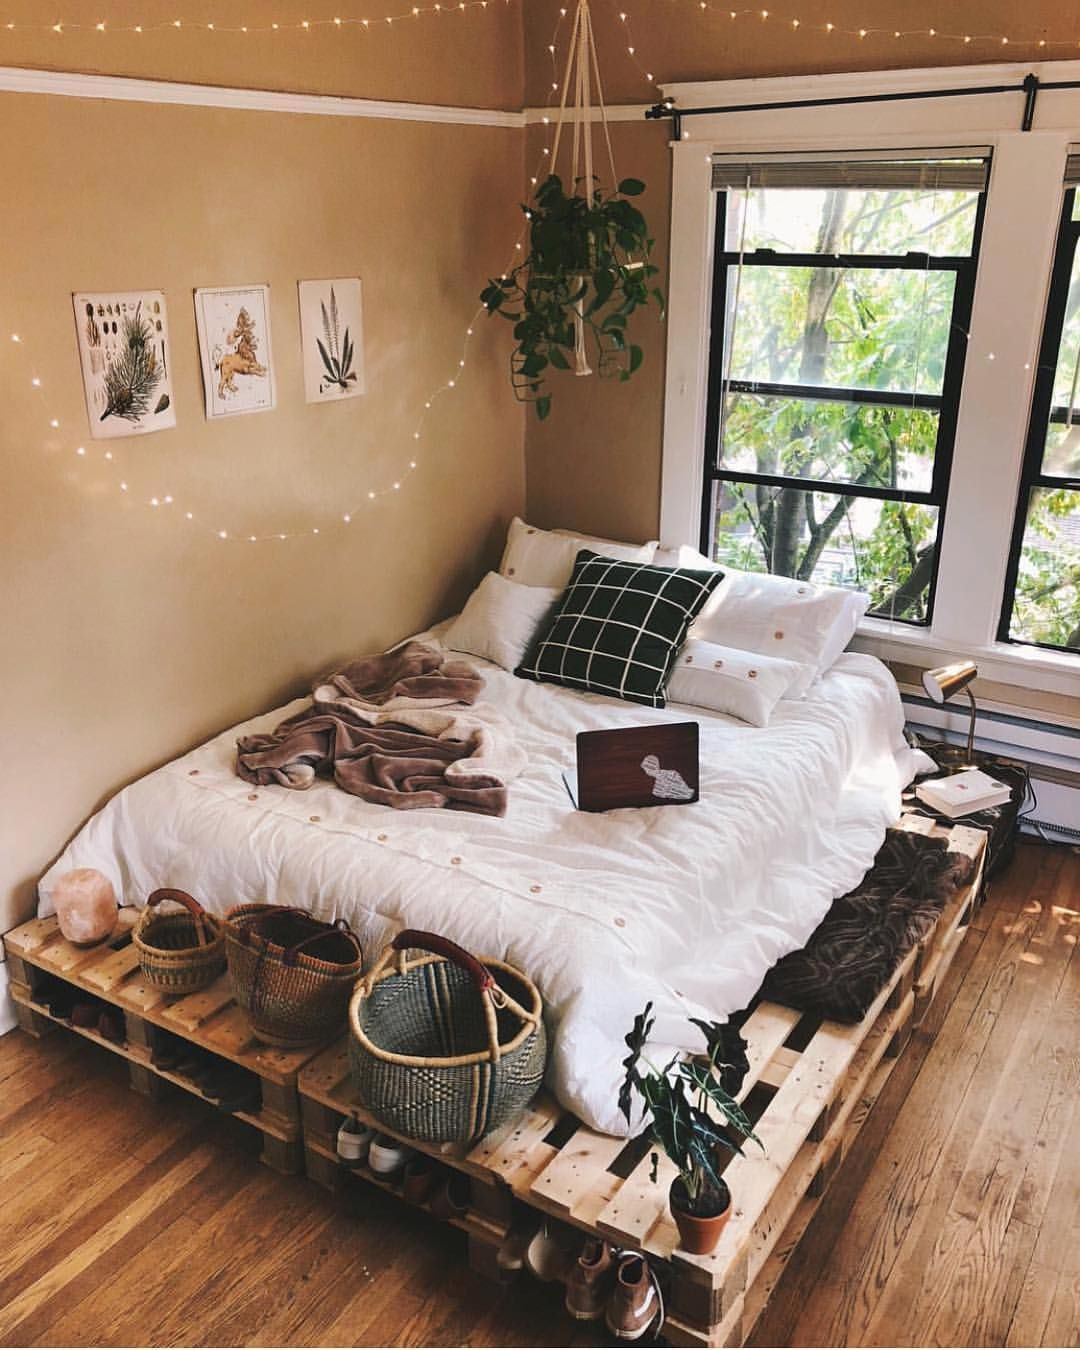 Aesthetic Bedroom Image By Kylie Etzler On Room Ideas Cheap